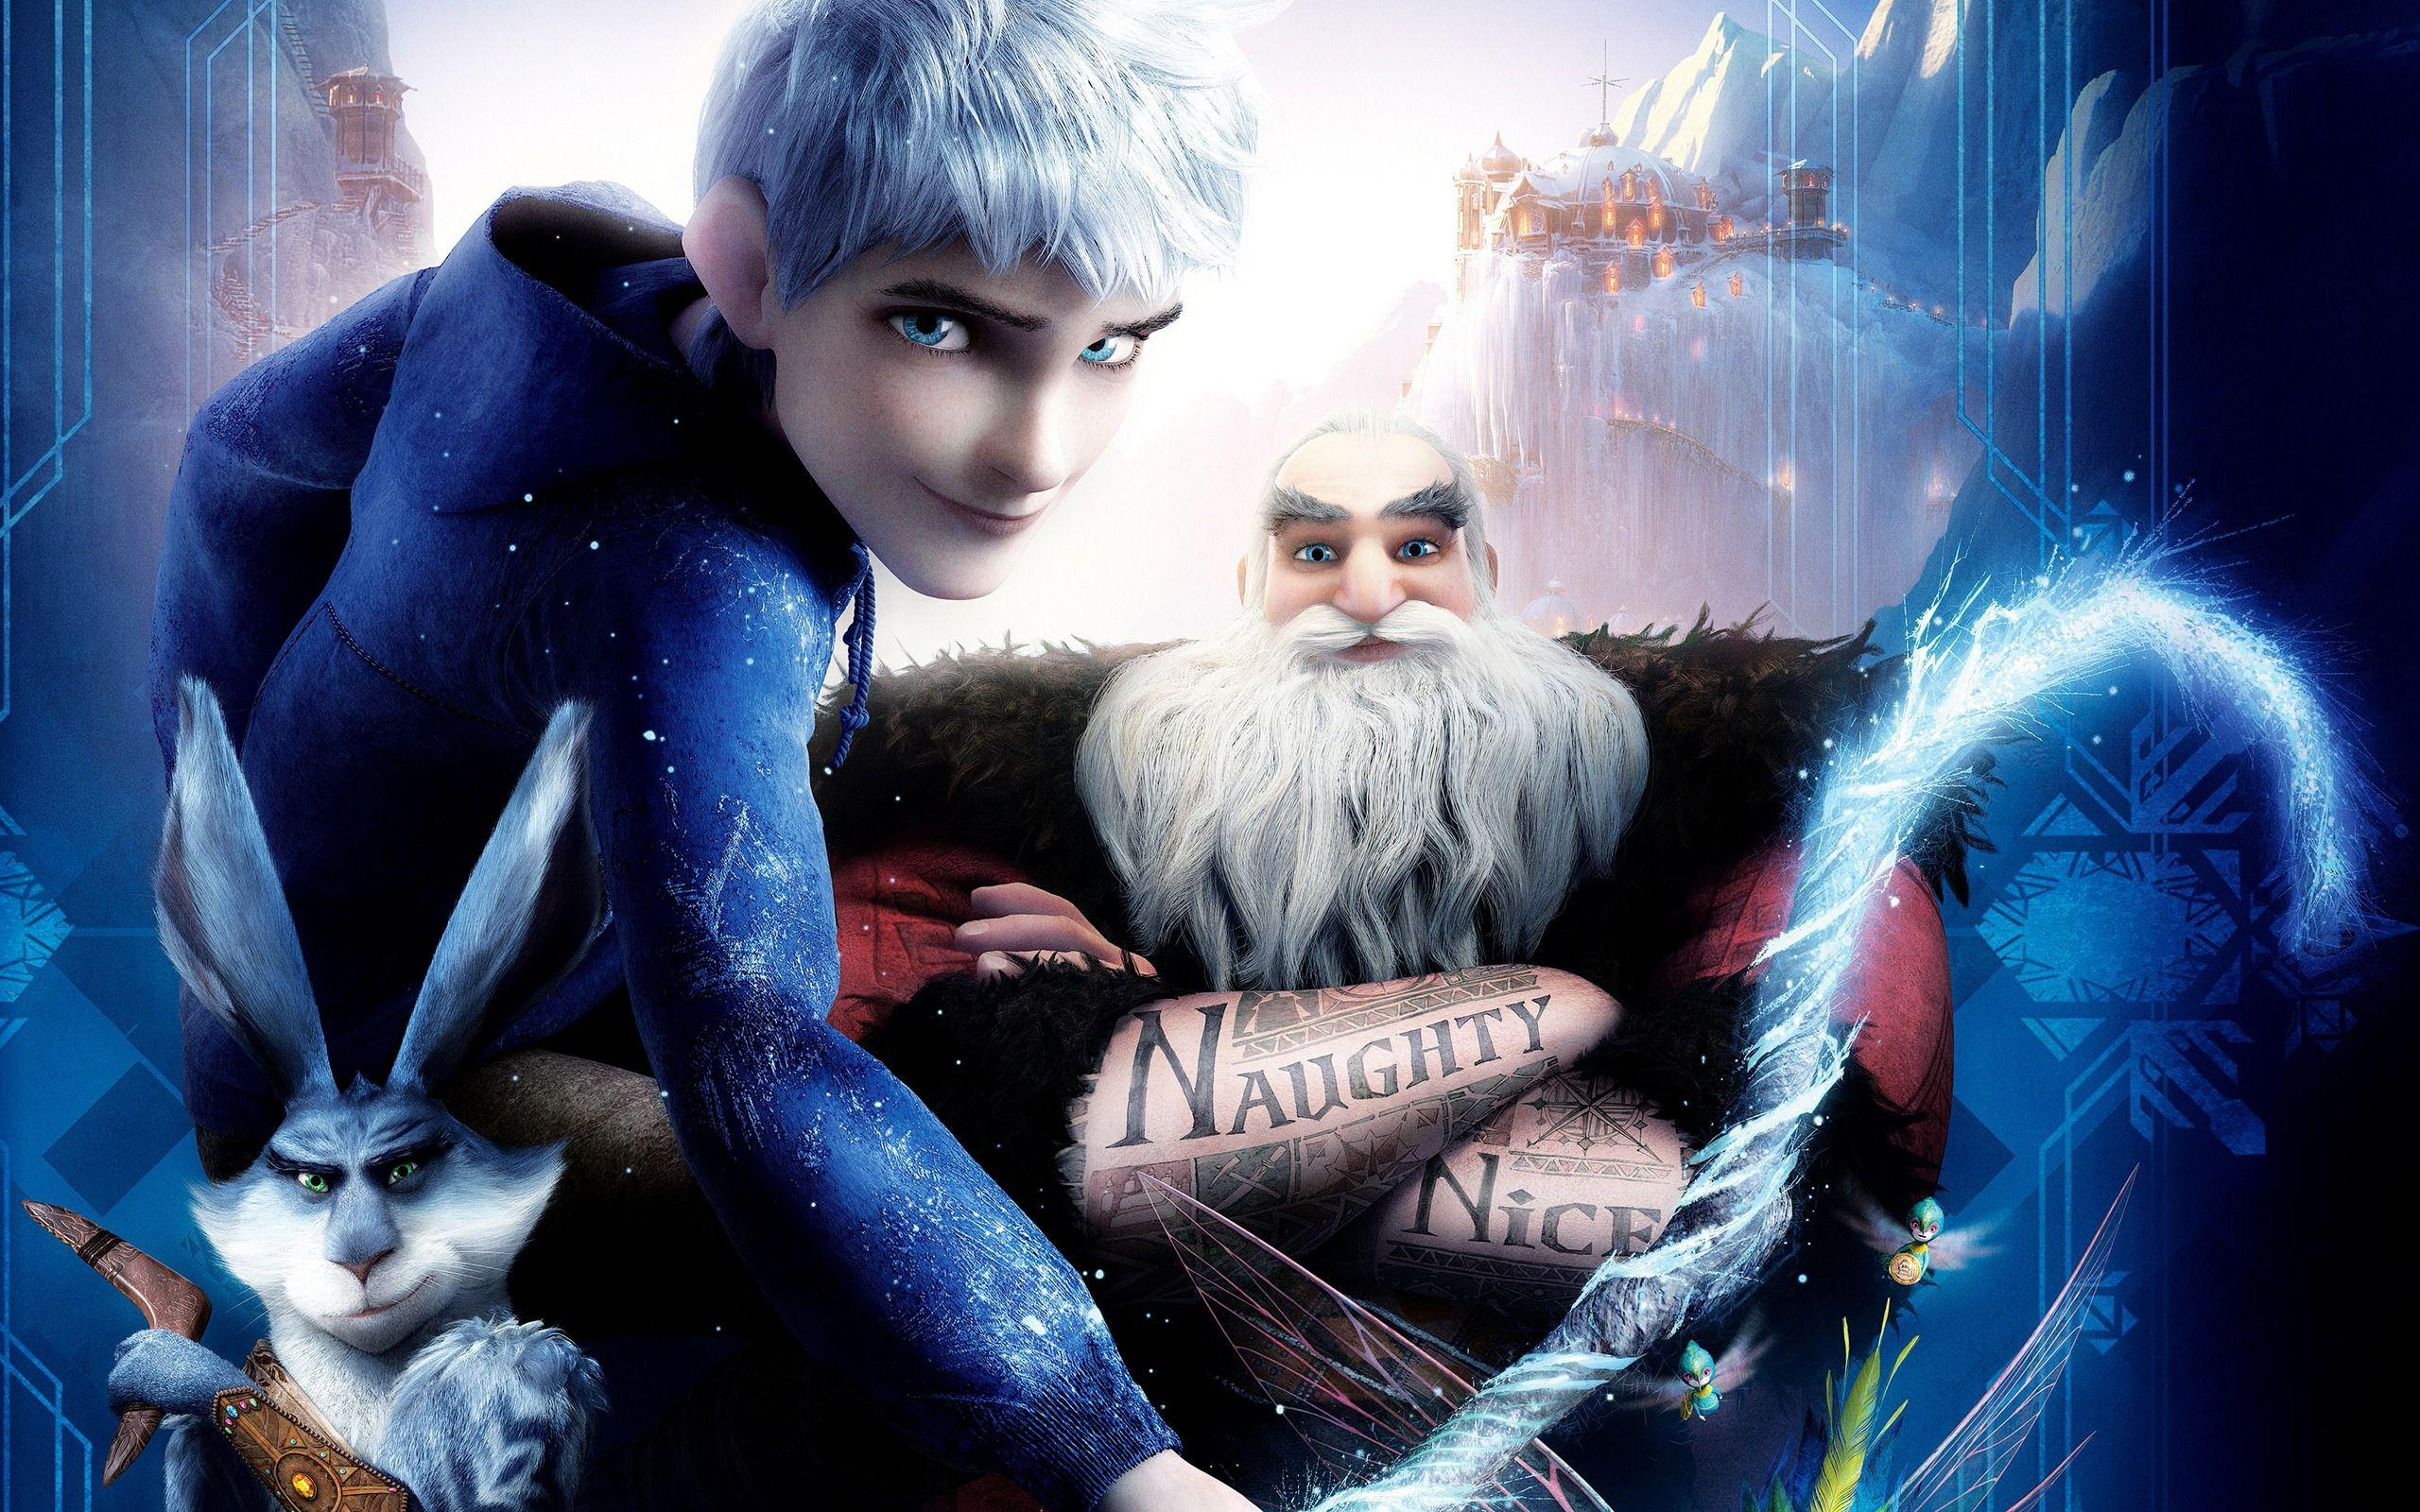 Rise of the guardians wallpapers wallpaper cave rise of the guardians hd wallpapers 4 2560x1600 wallpaper thecheapjerseys Gallery